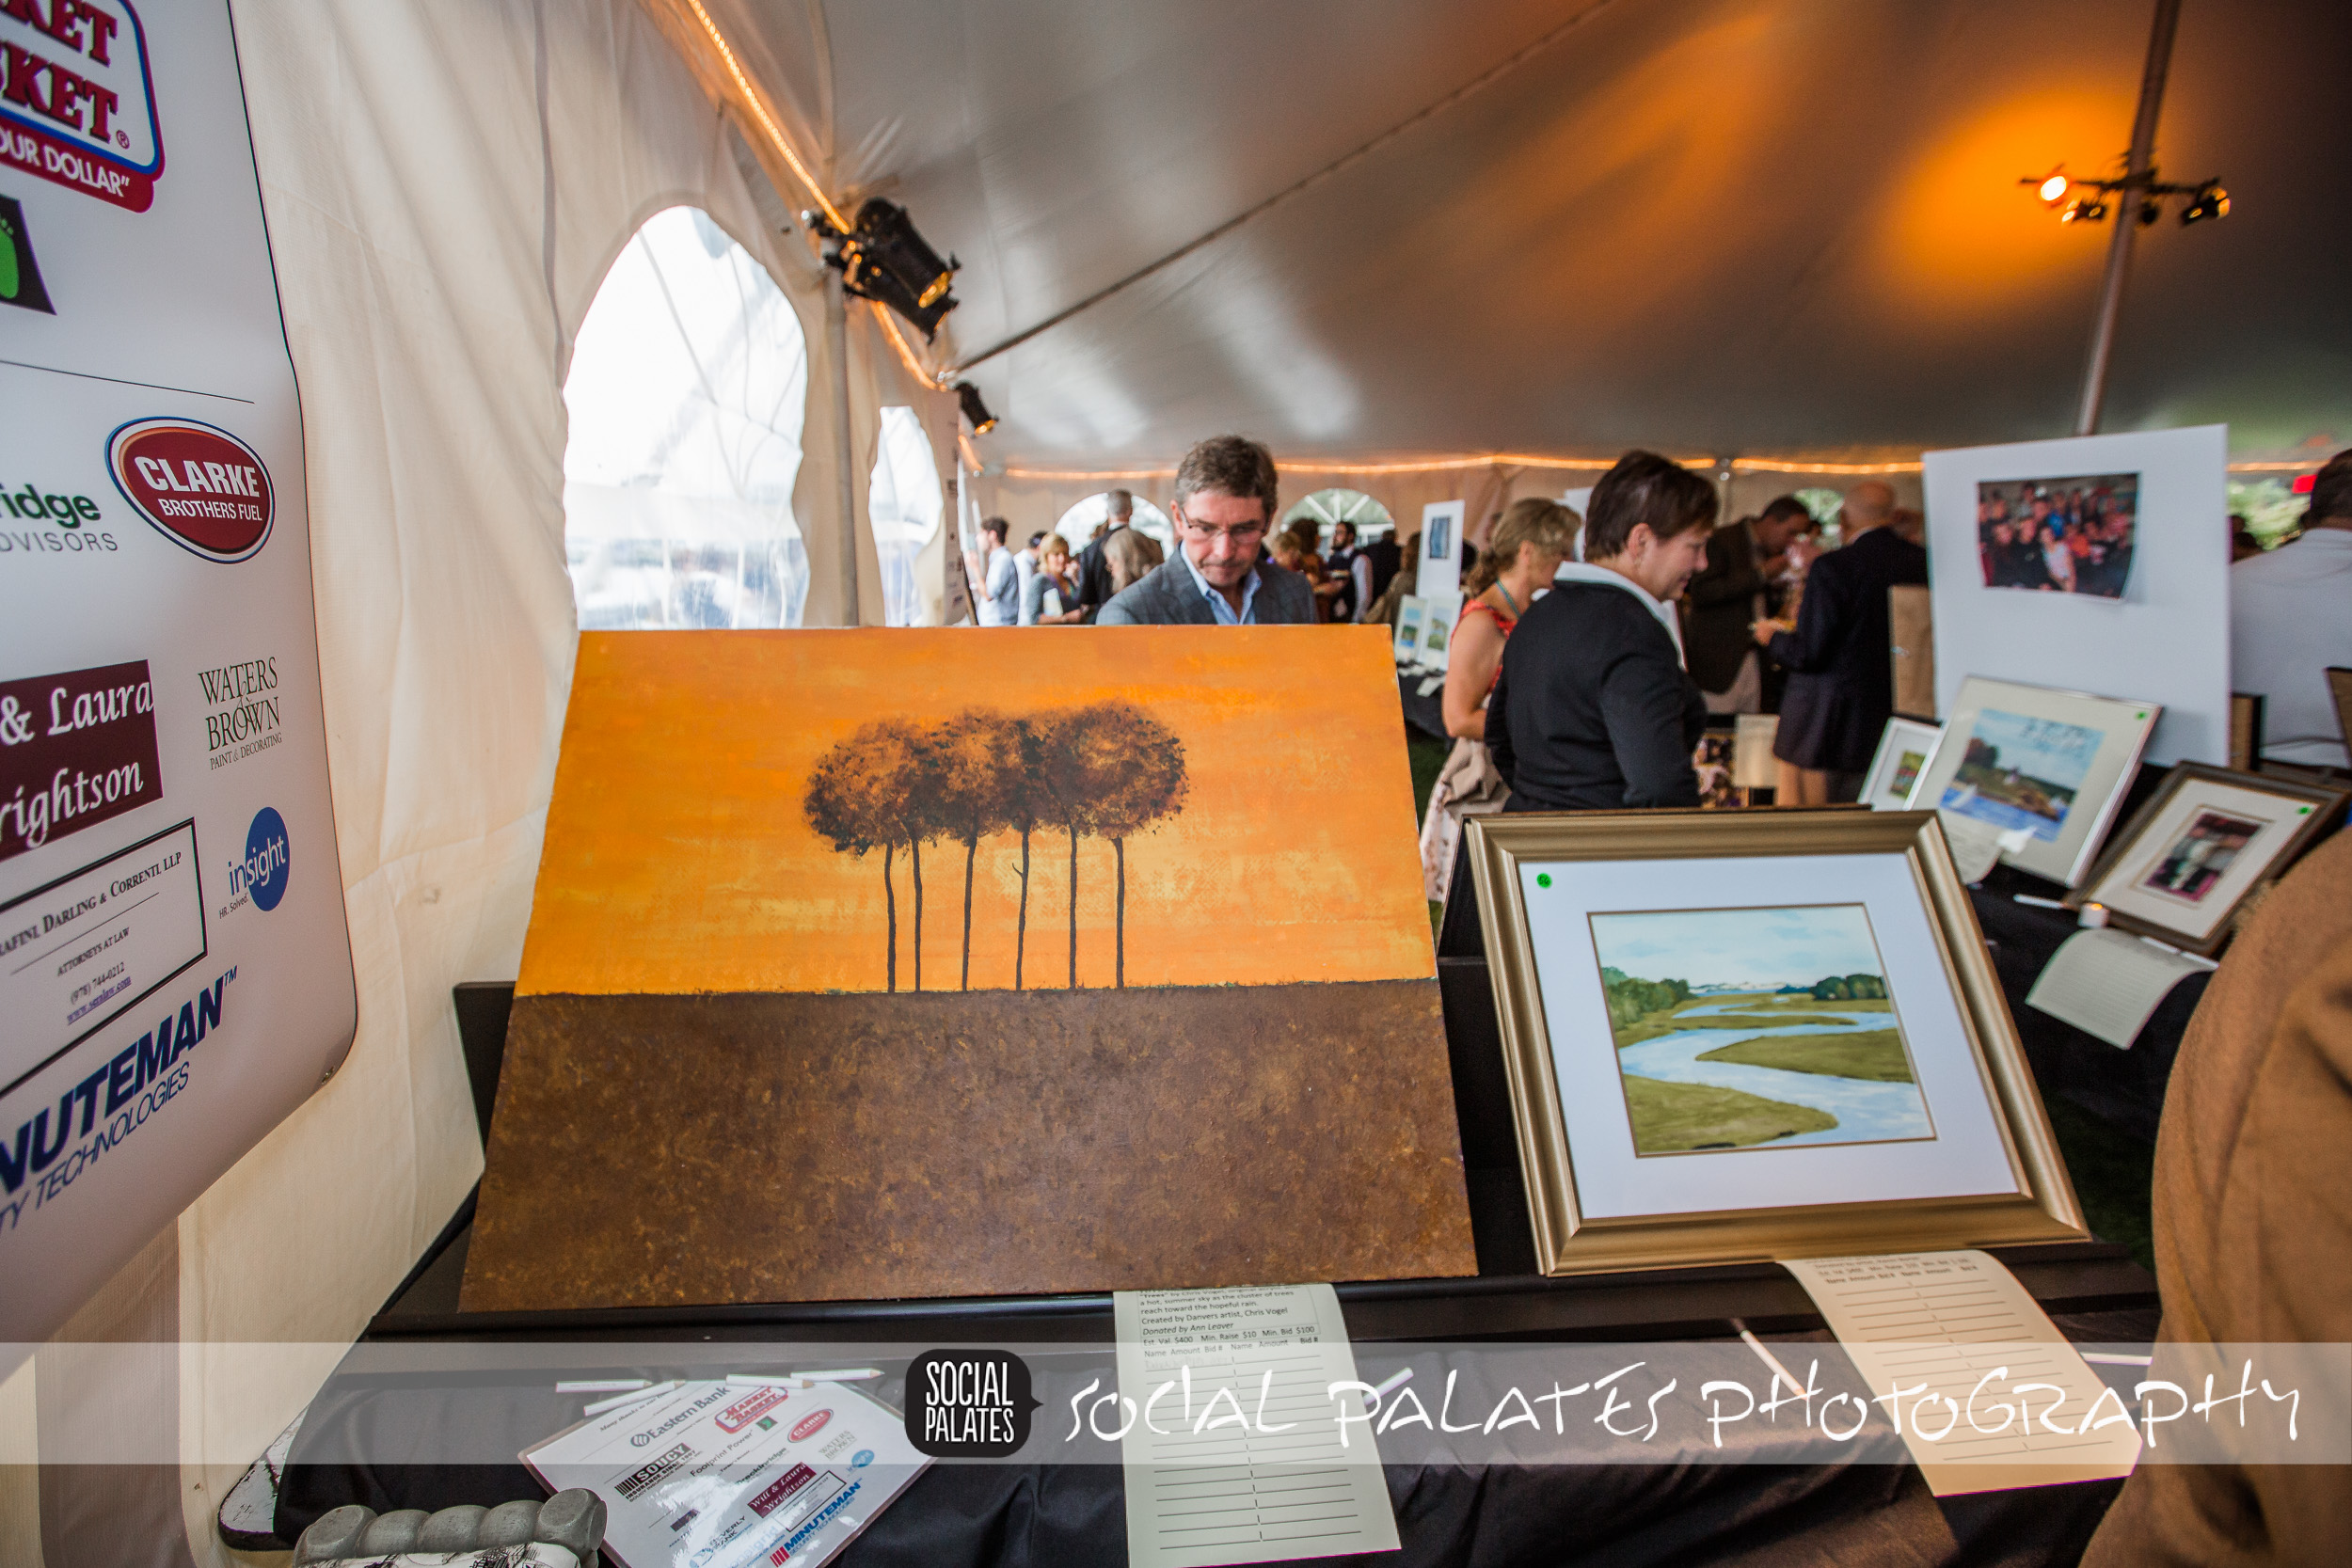 Taste_of_the_gables_2014-4789.jpg